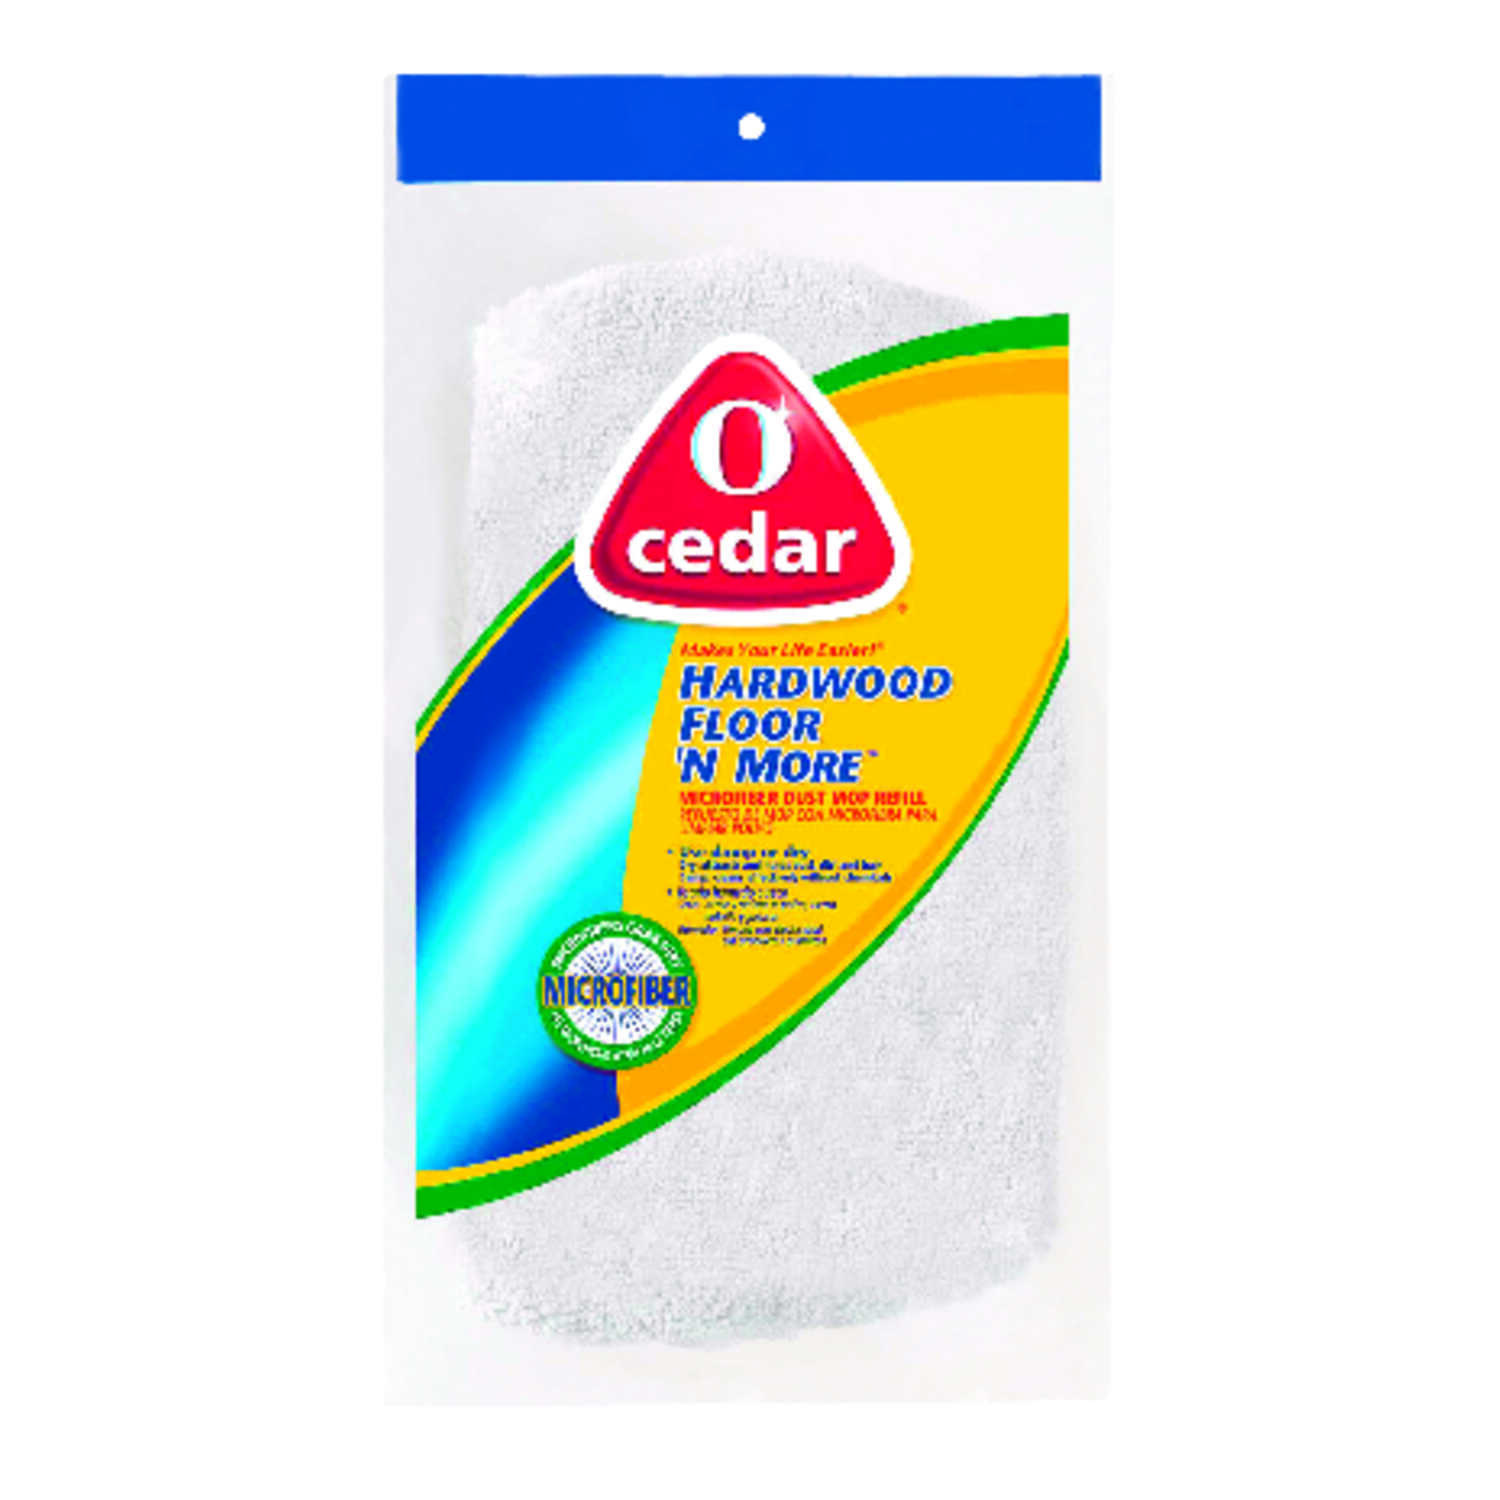 O-Cedar  Hardwood Floor 'N More  15.5 in. L Terry Cloth  Mop Refill  1 pk